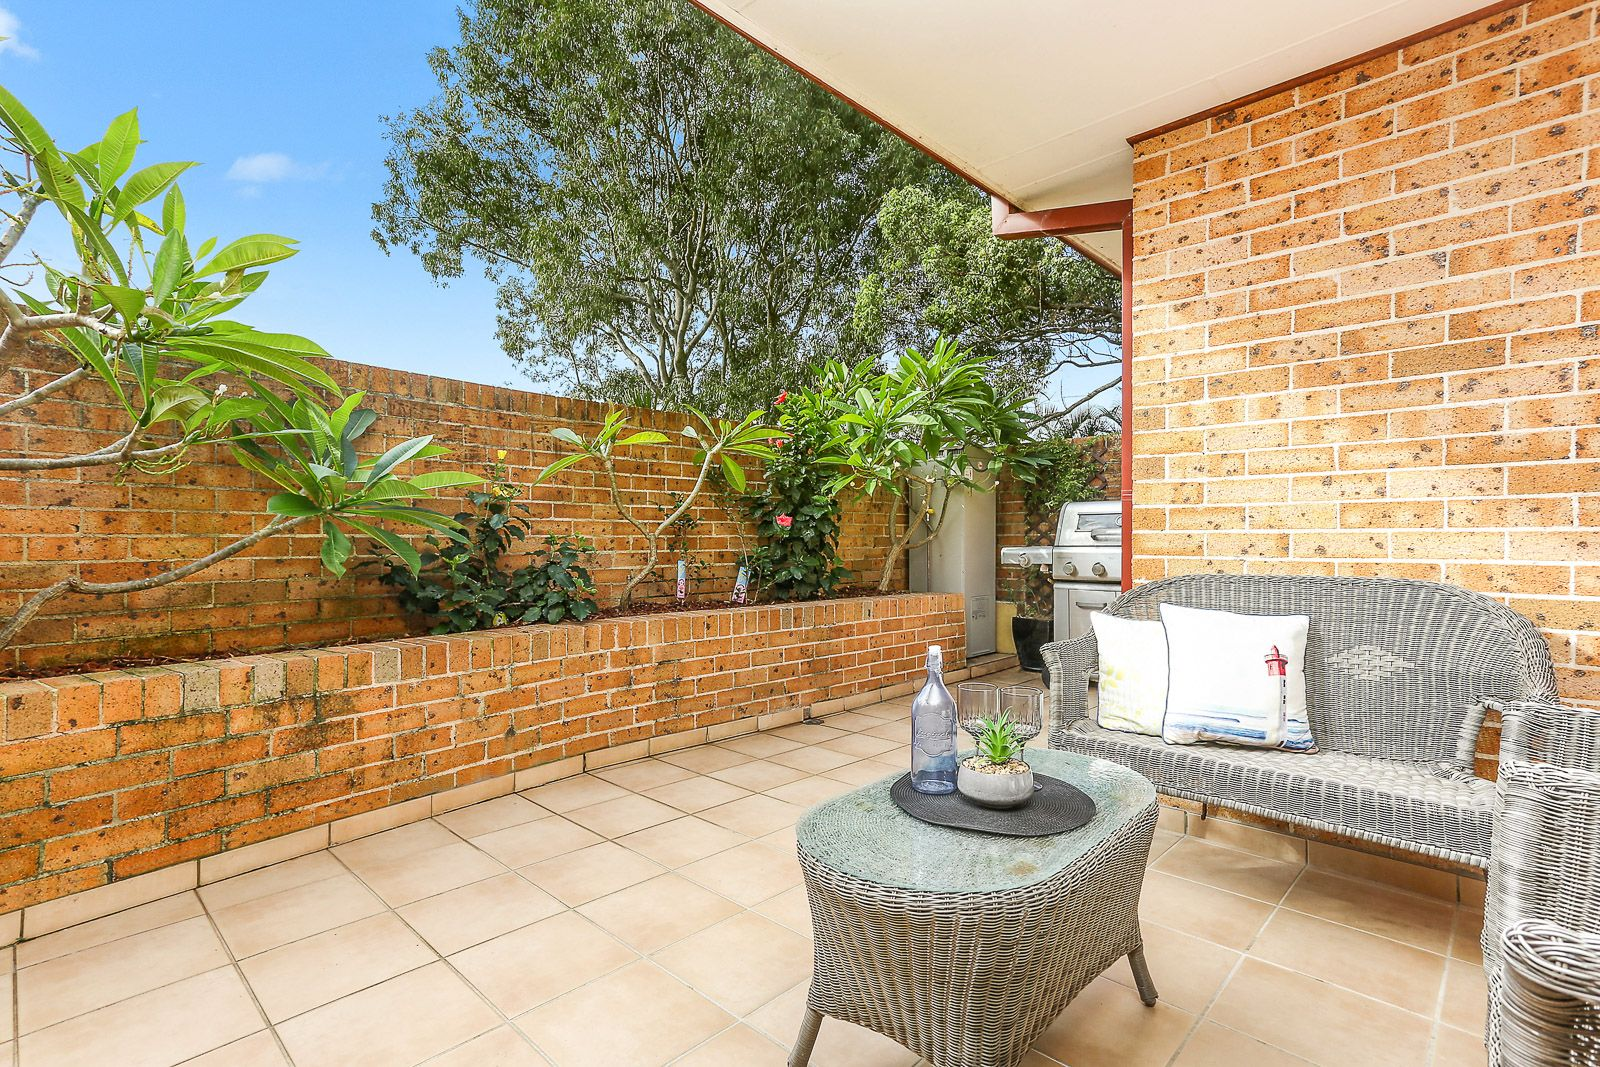 3/69 New Orleans Crescent, Maroubra NSW 2035, Image 1